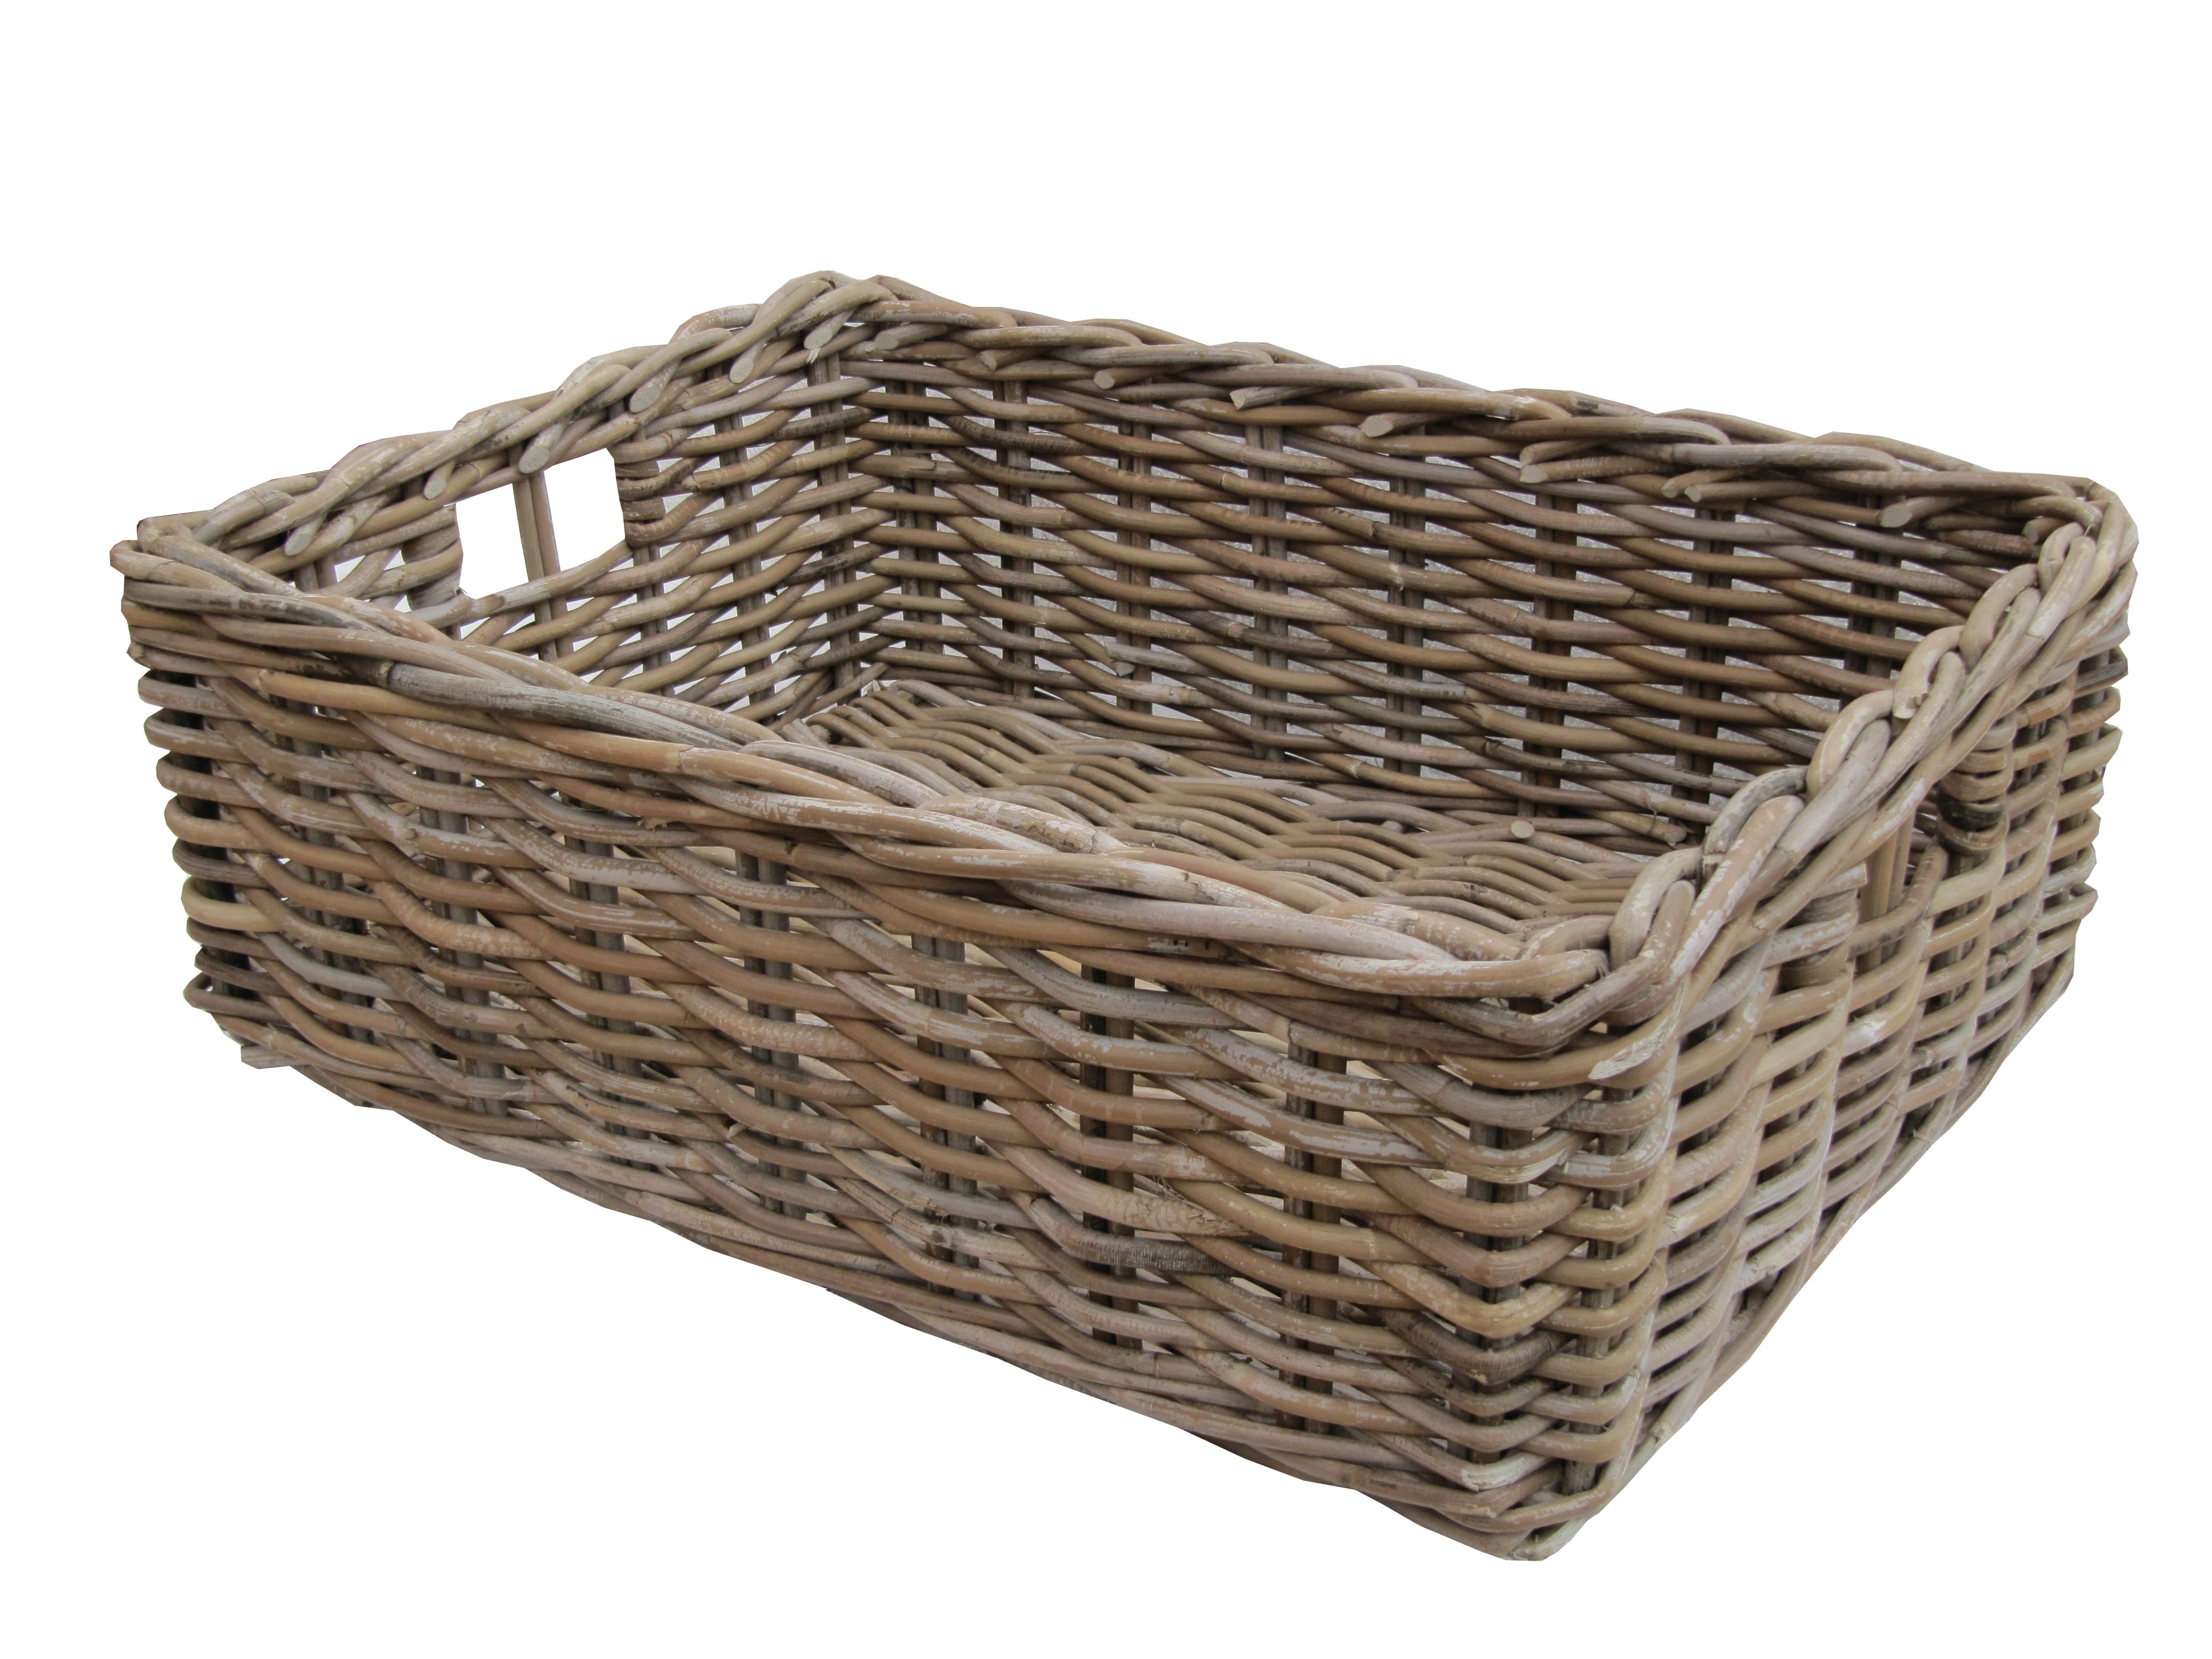 These Rectangular Grey & Buff Rattan Storage Baskets / Empty Hamper Baskets are useful for all